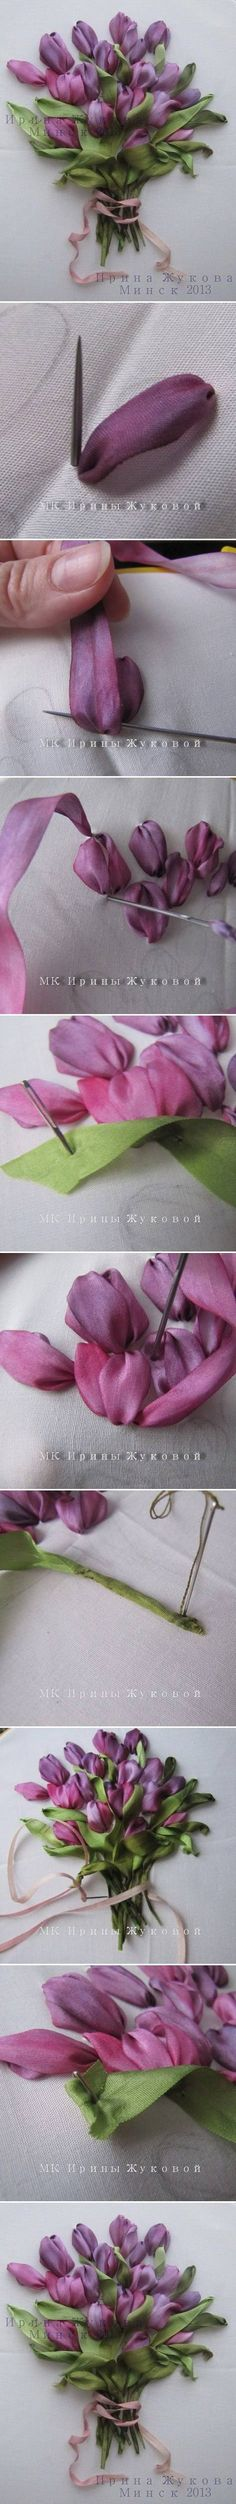 "<input+type=""hidden""+value=""""+data-frizzlyPostContainer=""""+data-frizzlyPostUrl=""http://www.usefuldiy.com/diy-embroidery-ribbon-flower/""+data-frizzlyPostTitle=""DIY+Embroidery+Ribbon+Flower""+data-frizzlyHoverContainer=""""><p>>>>+Craft+Tutorials+More+Free+Instructions+Free+Tutorials+More+Craft+Tutorials</p>"